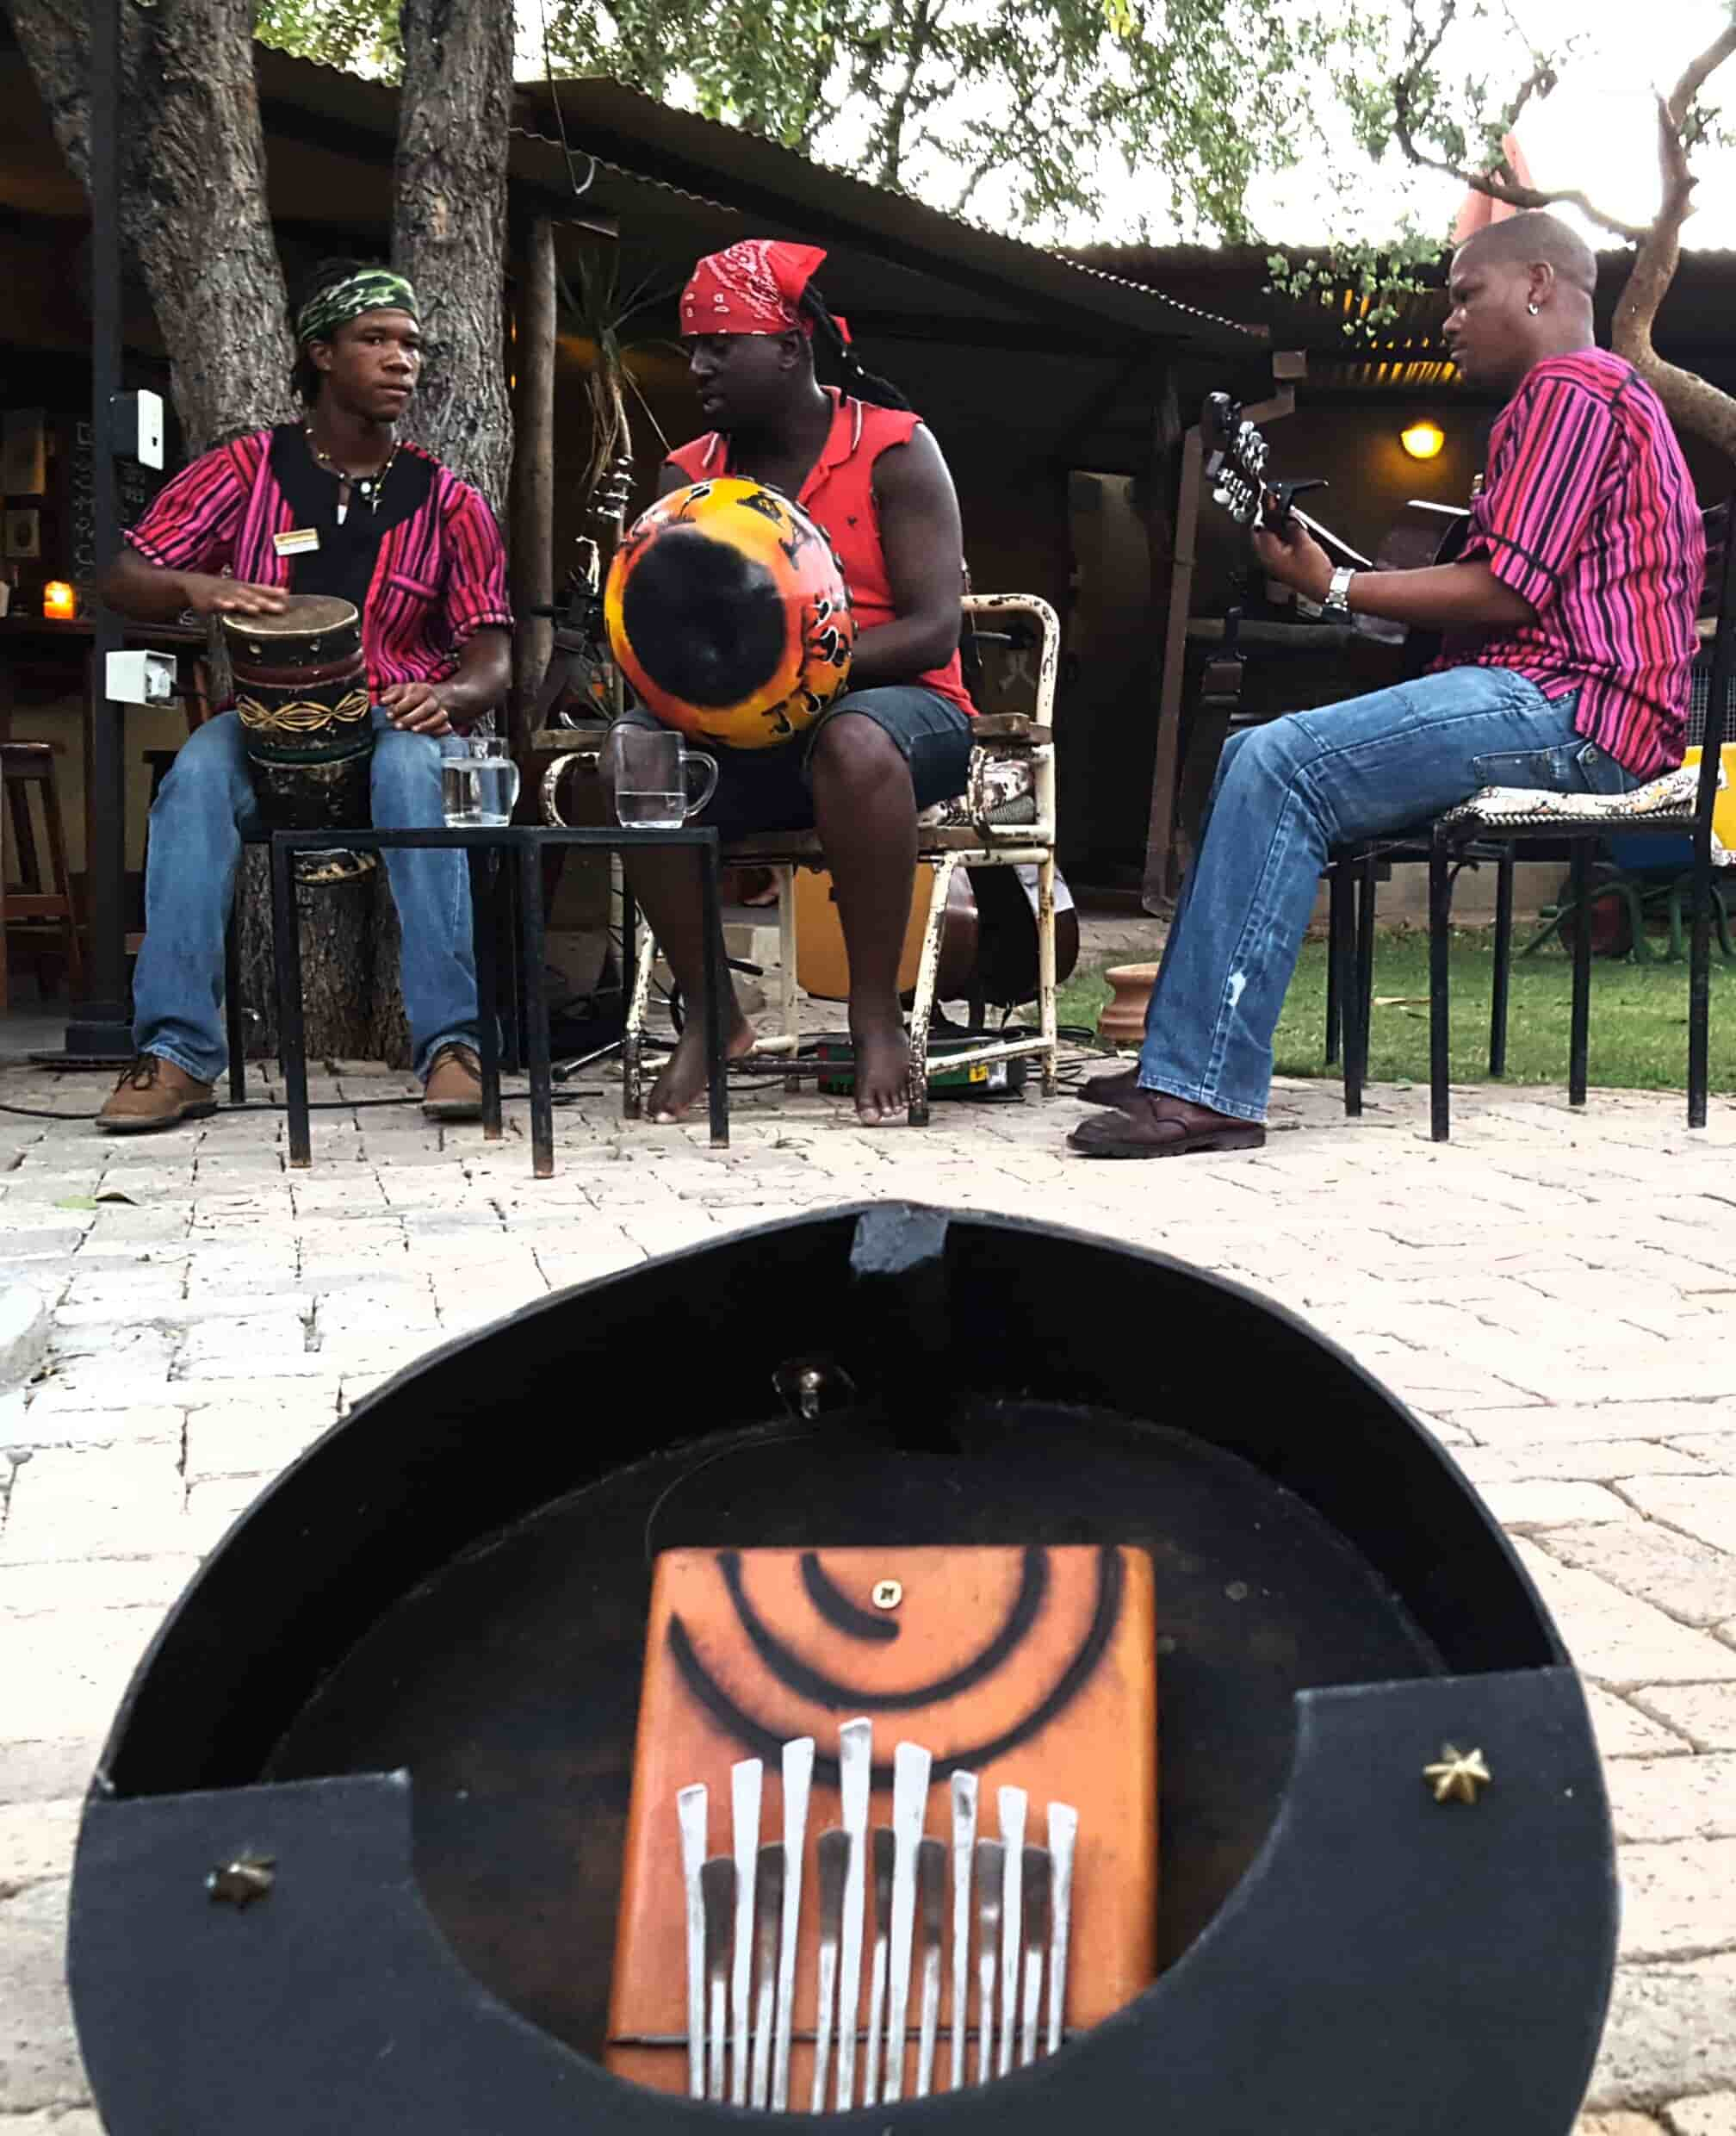 Mbira is considered to be a true African instrument